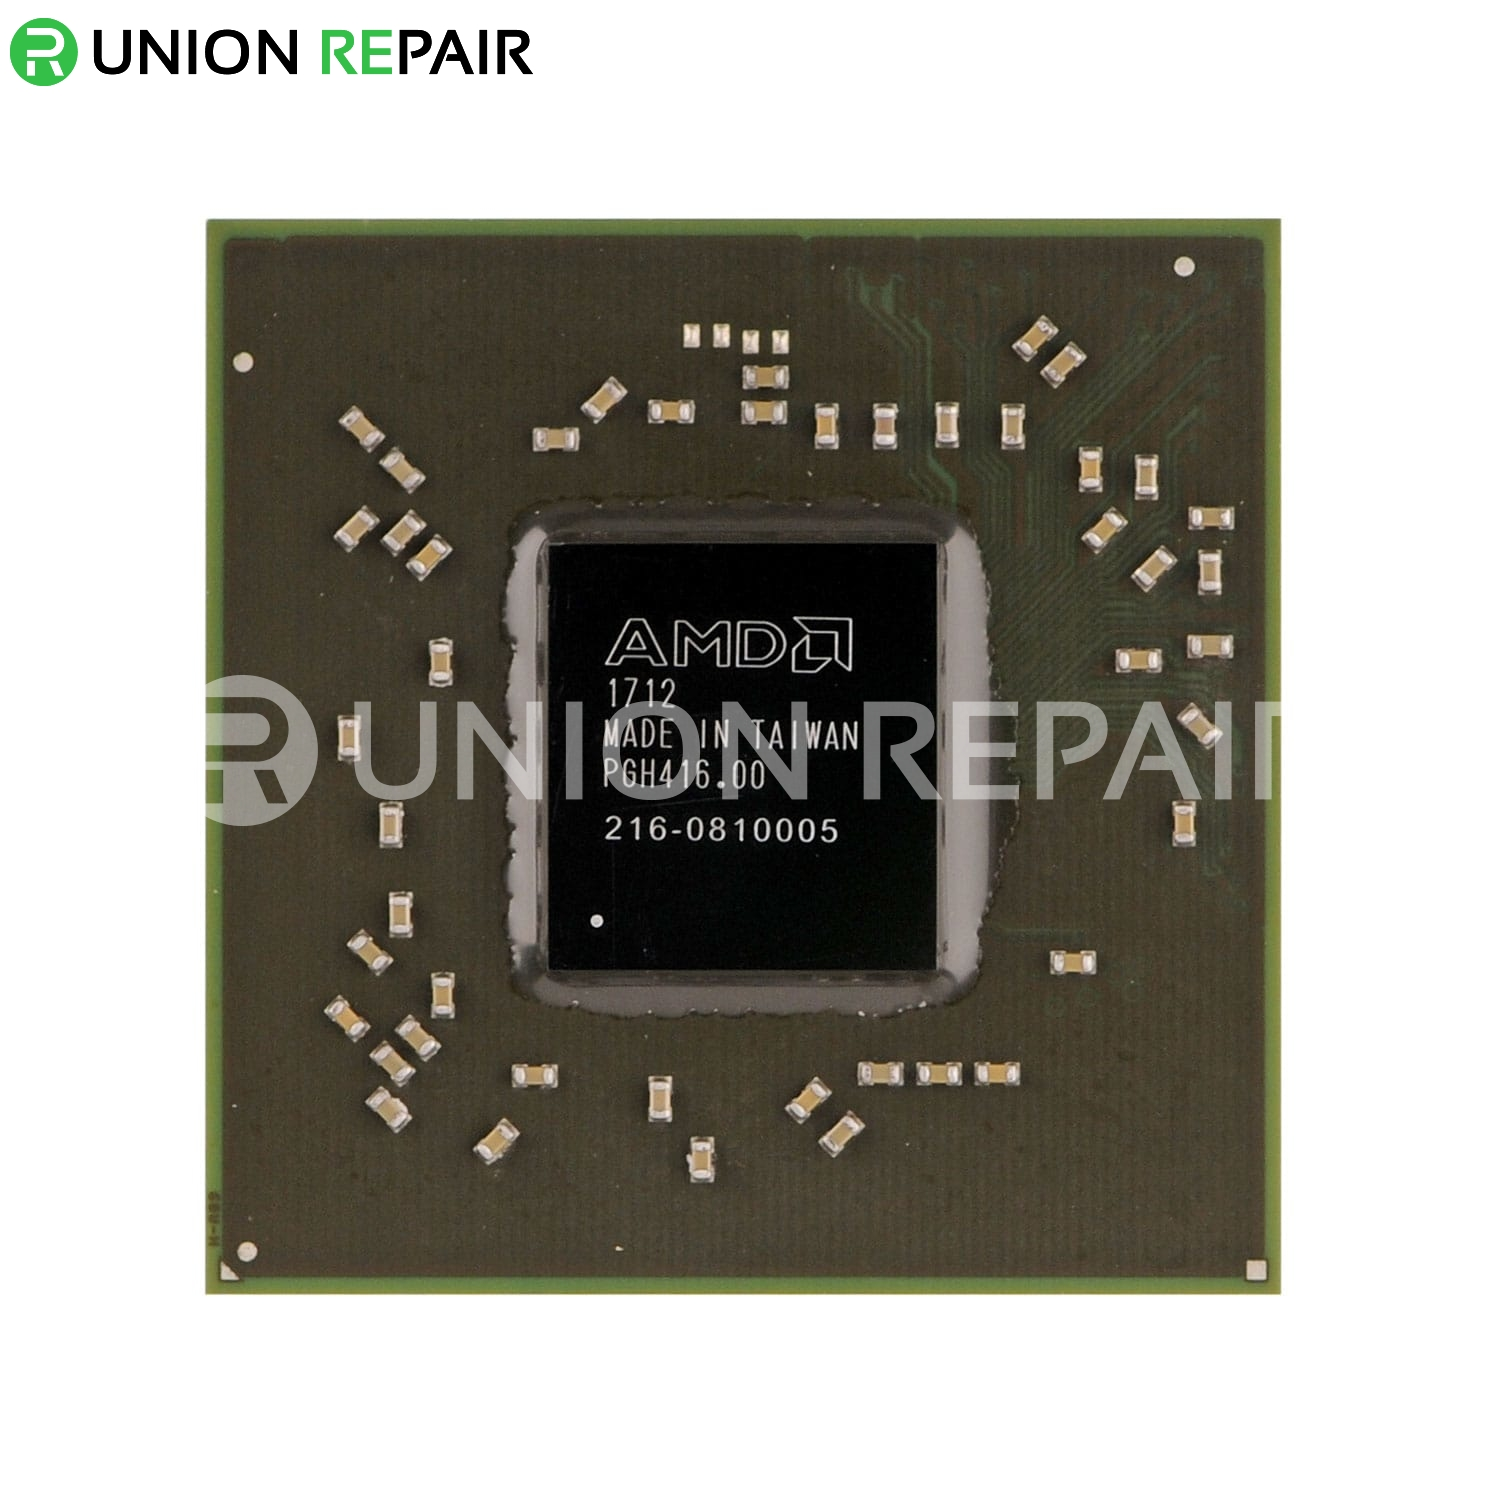 Amd 6750m drivers for mac os